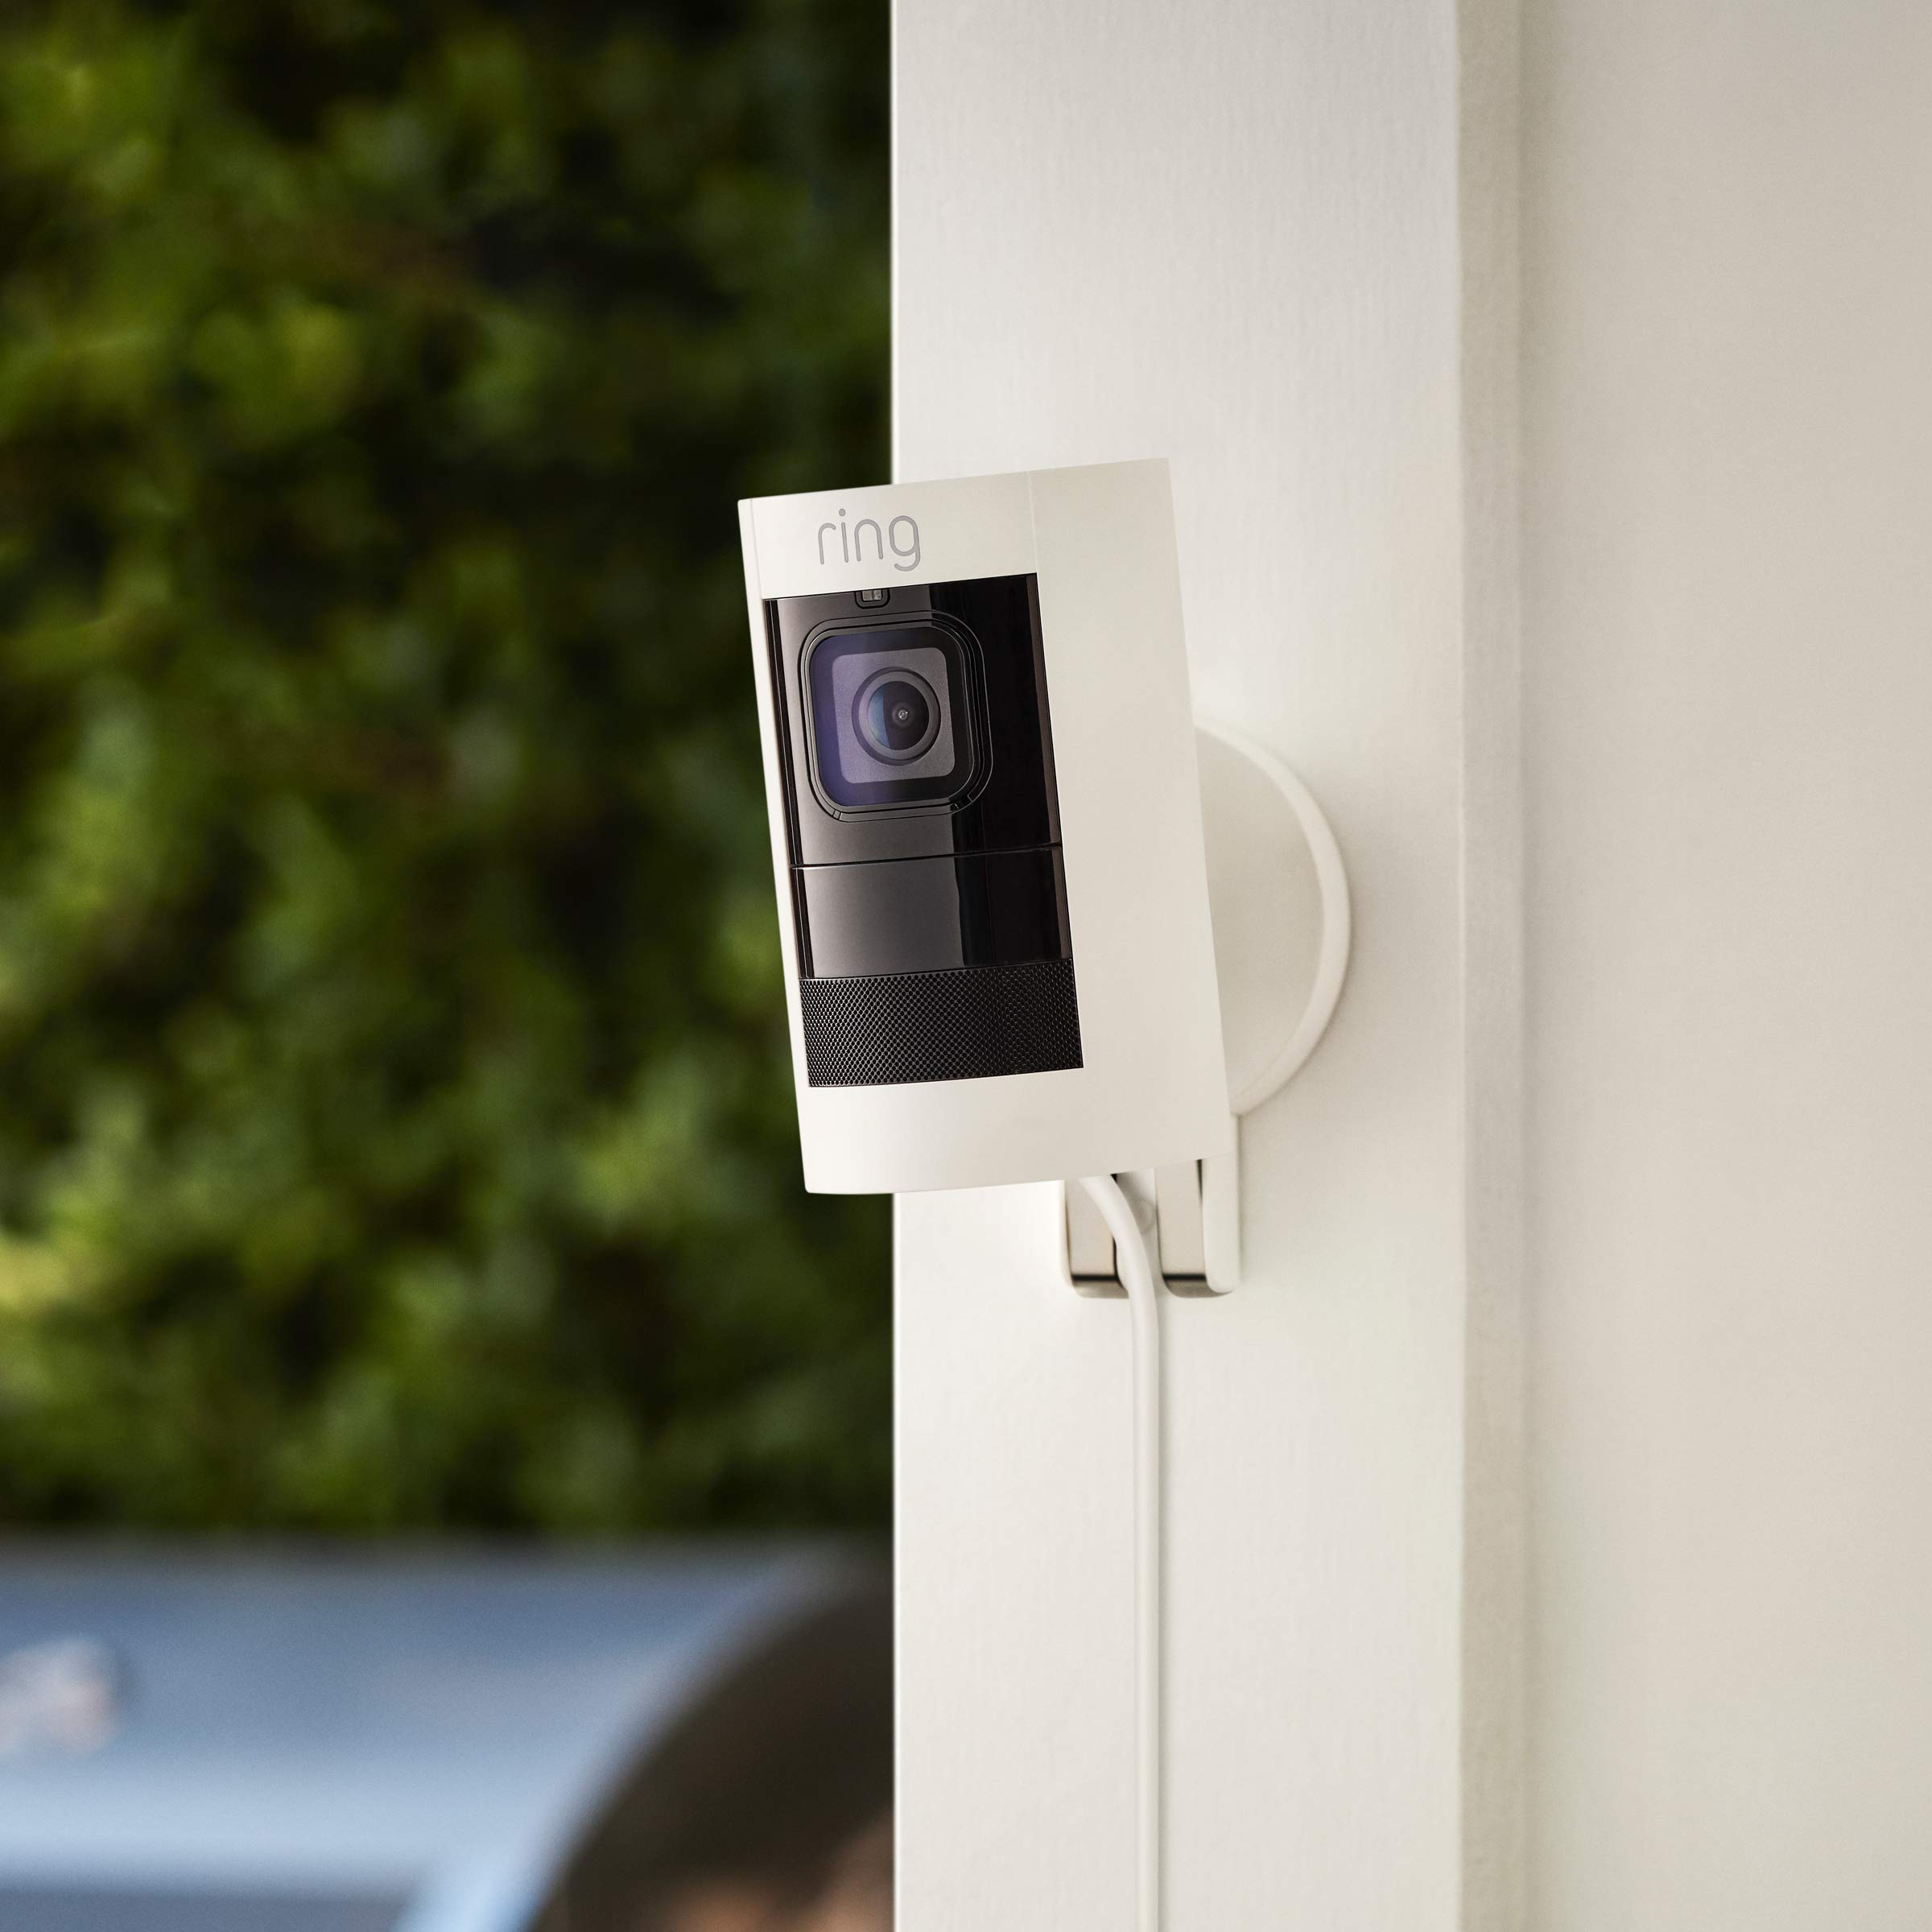 Ring Stick Up Cam Wired HD Security Camera with Two-Way Talk, Night Vision, White, Works with Alexa by Ring (Image #5)